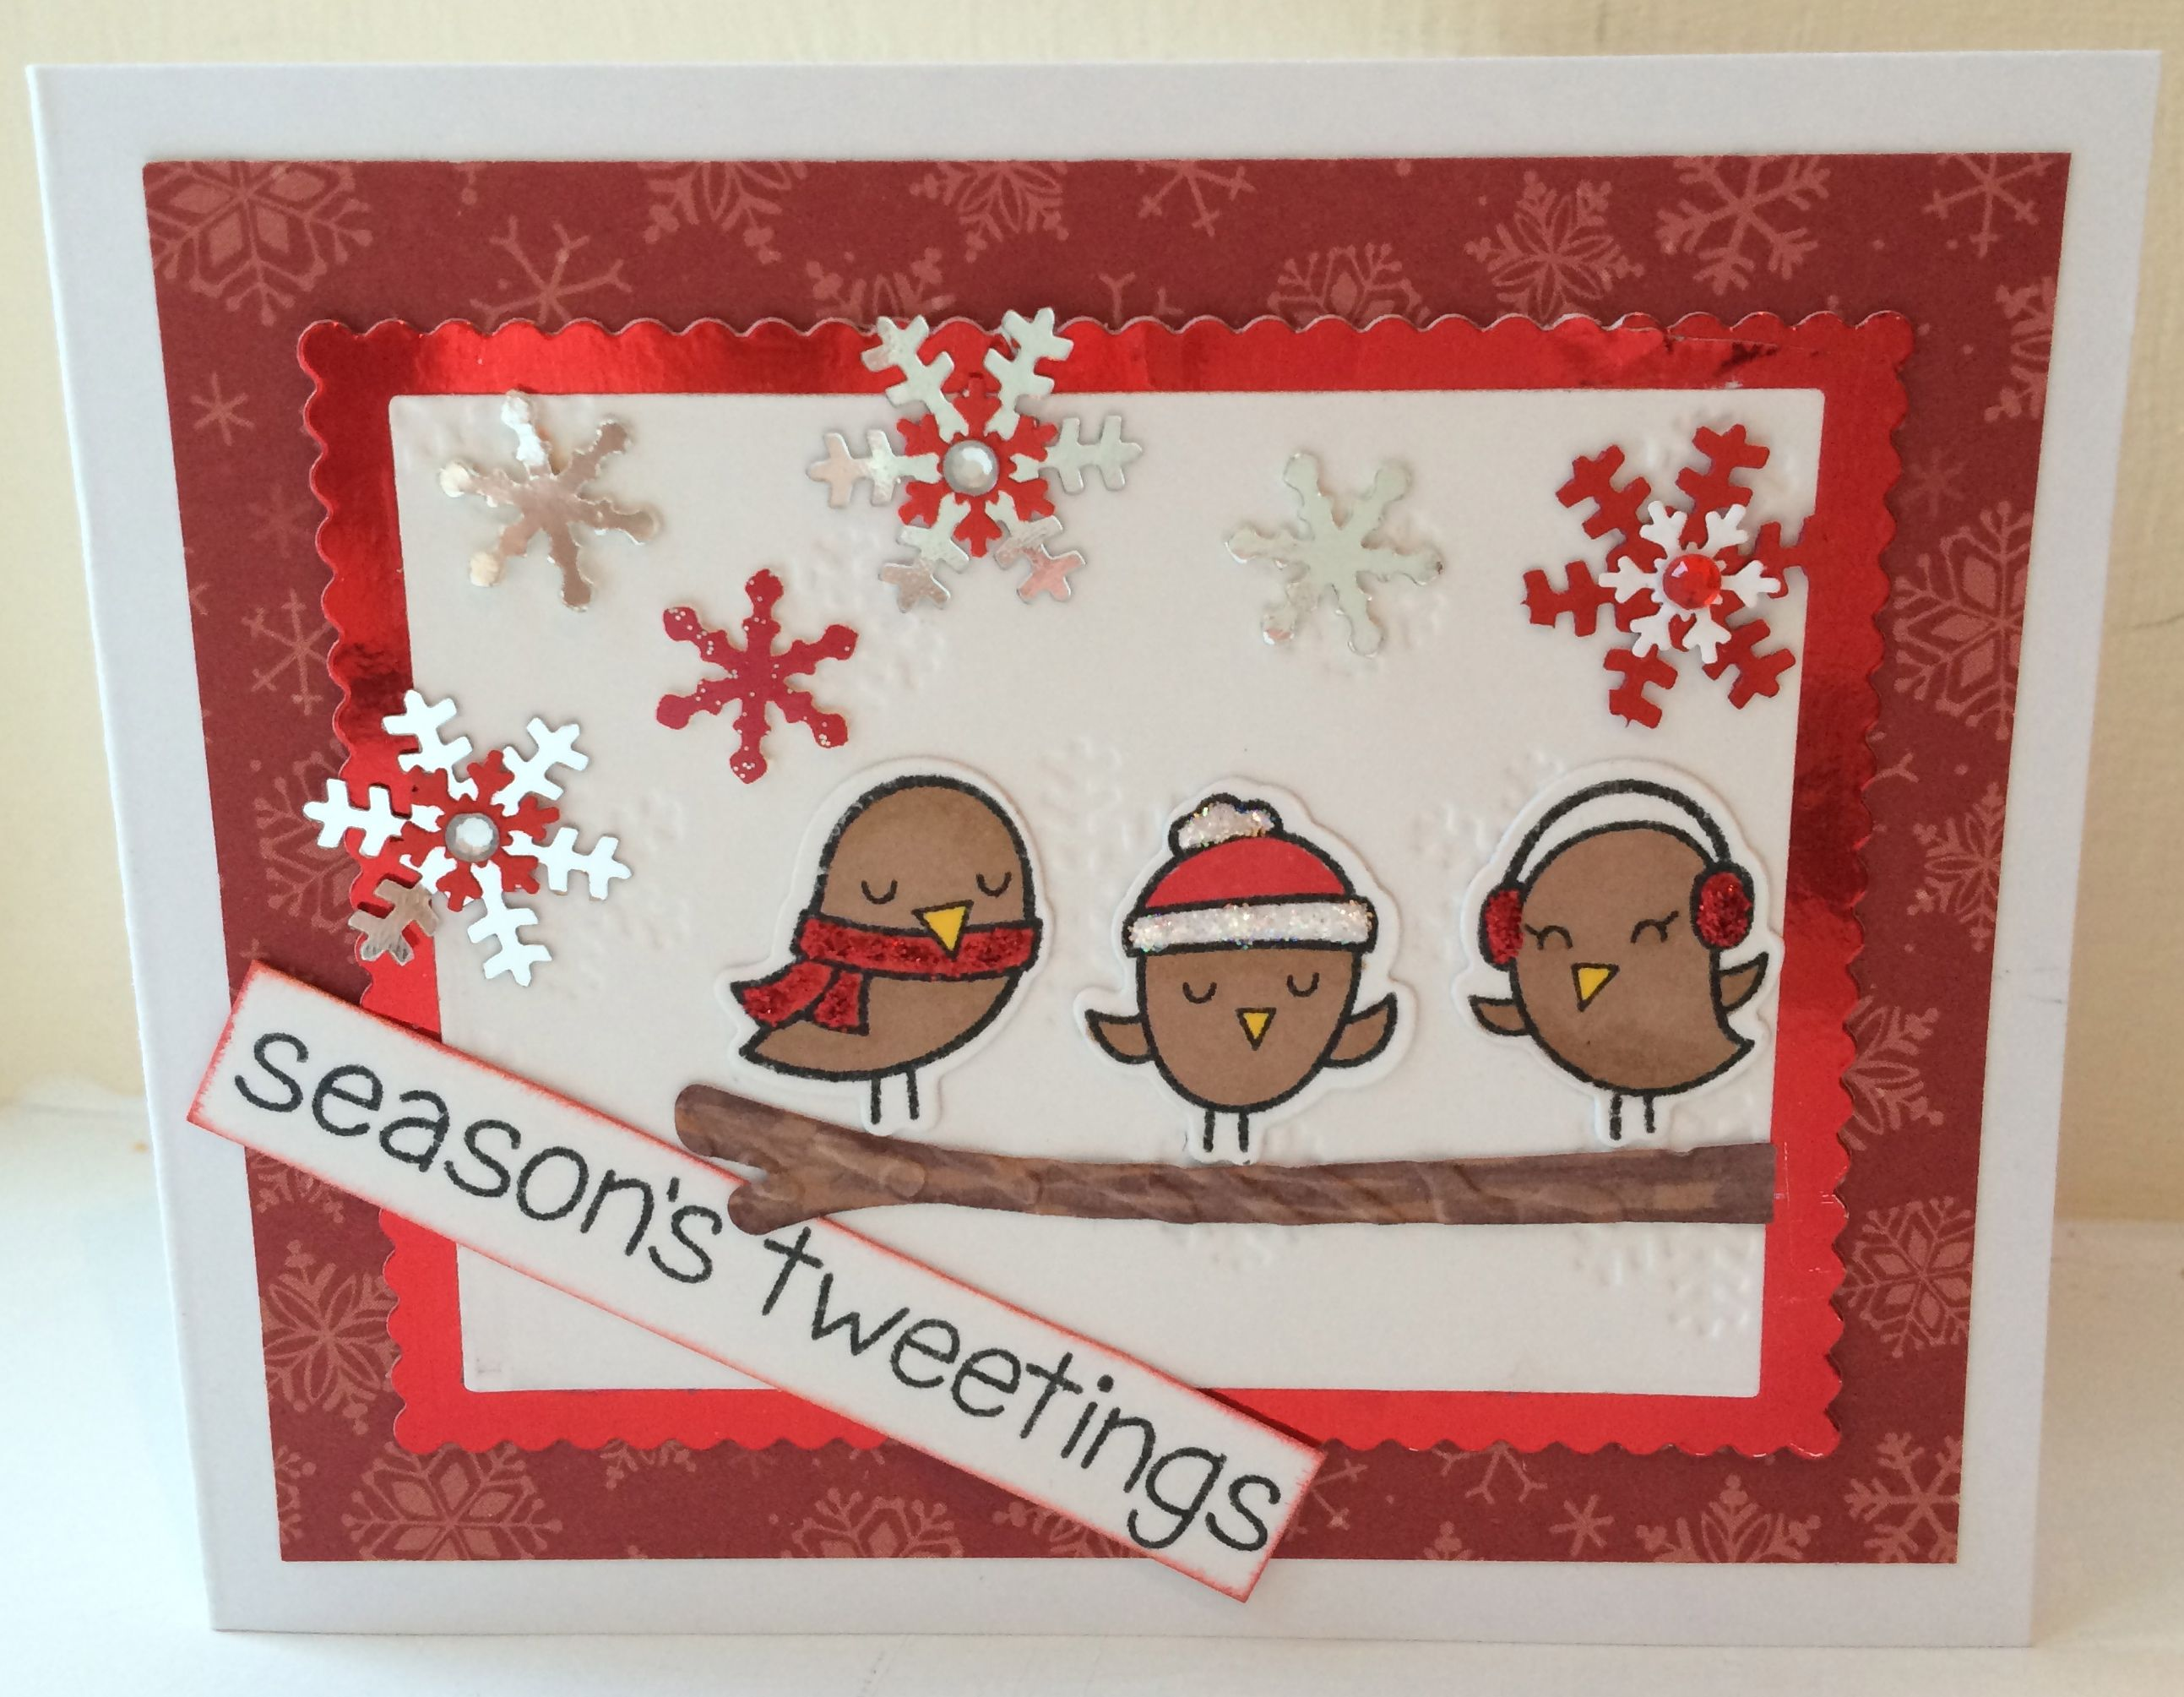 Lawn fawn season 39 s tweetings these birds are so cute bastelideen weihnachtskarten - Niedliche weihnachtskarten ...